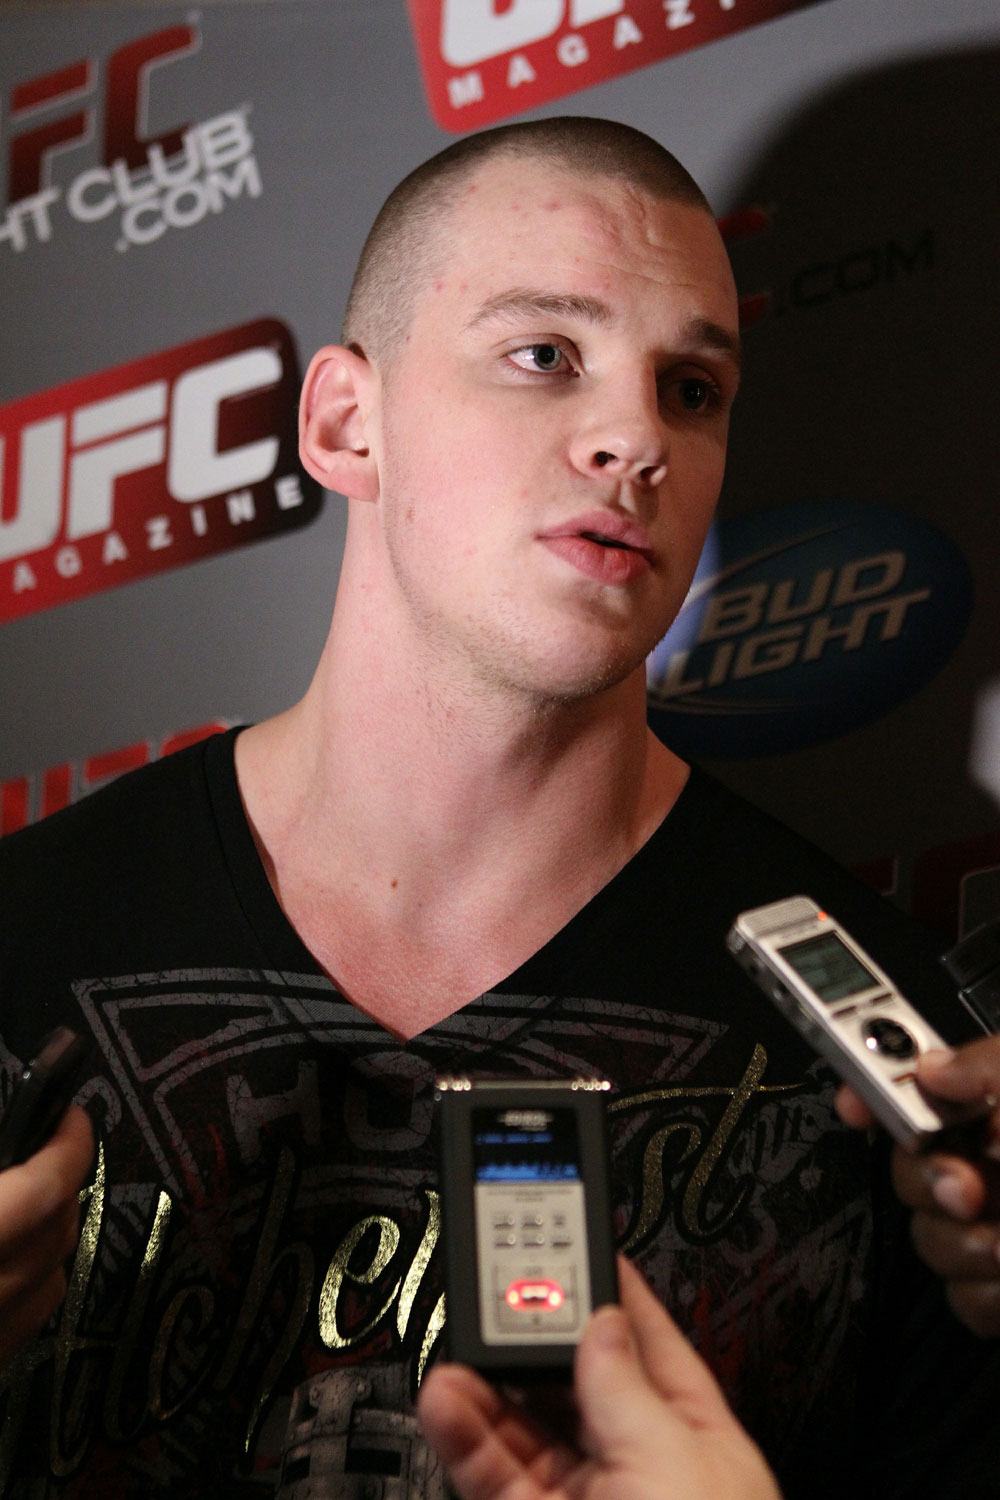 Stefan Struve answers questions at the UFC 124 open workouts at the Marriott Chateau Champlain in on December 8, 2010 in Montreal, Quebec, Canada.